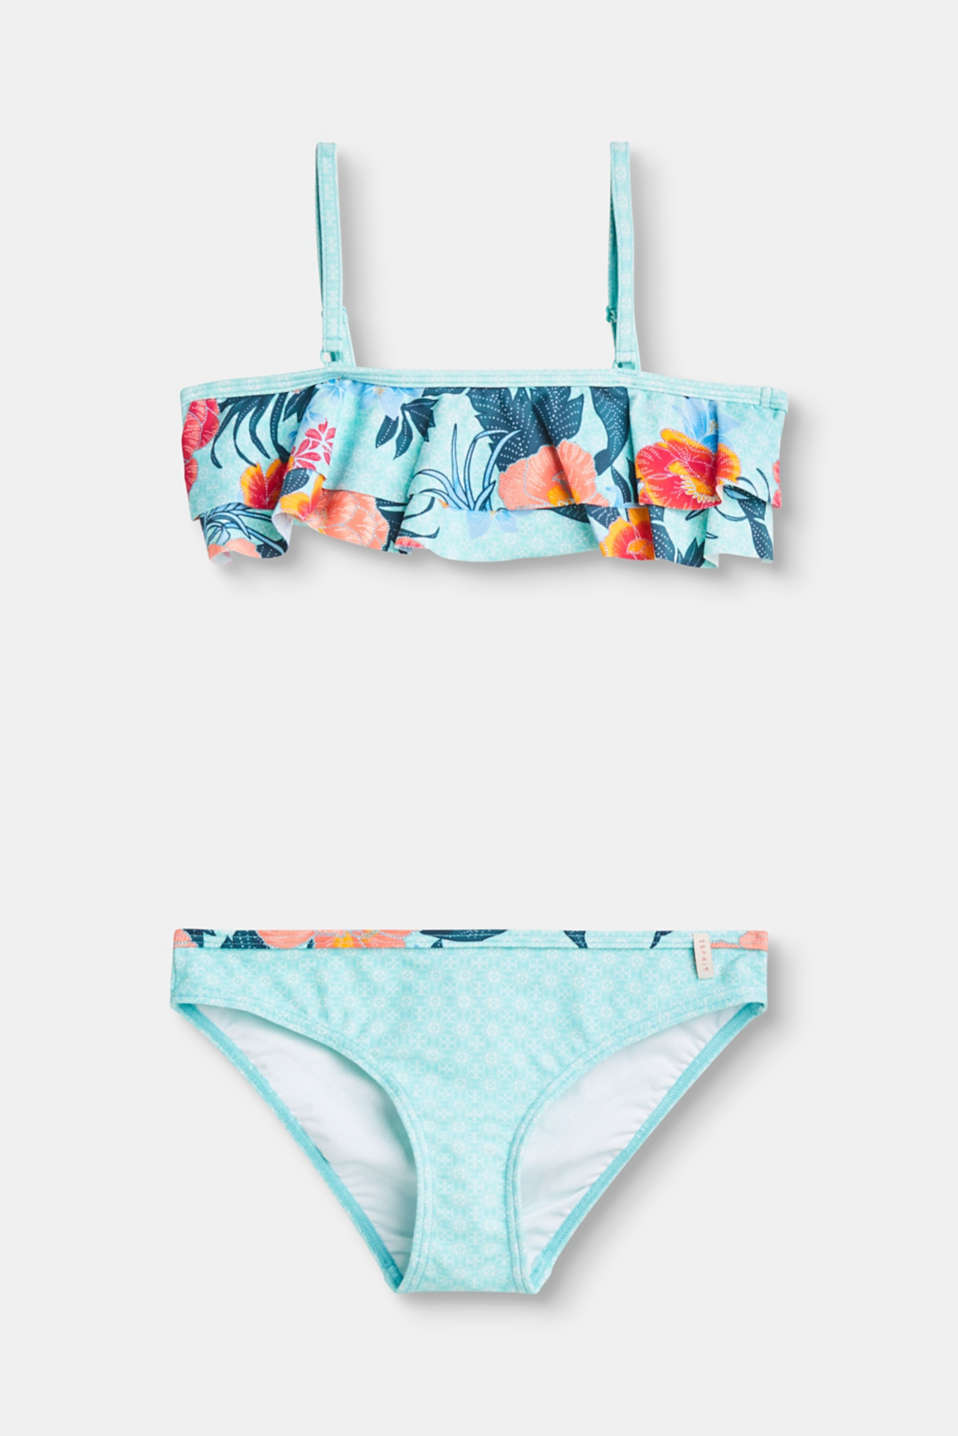 A crop top trimmed with two flounces and a colourful floral print define the style of this bikini set.